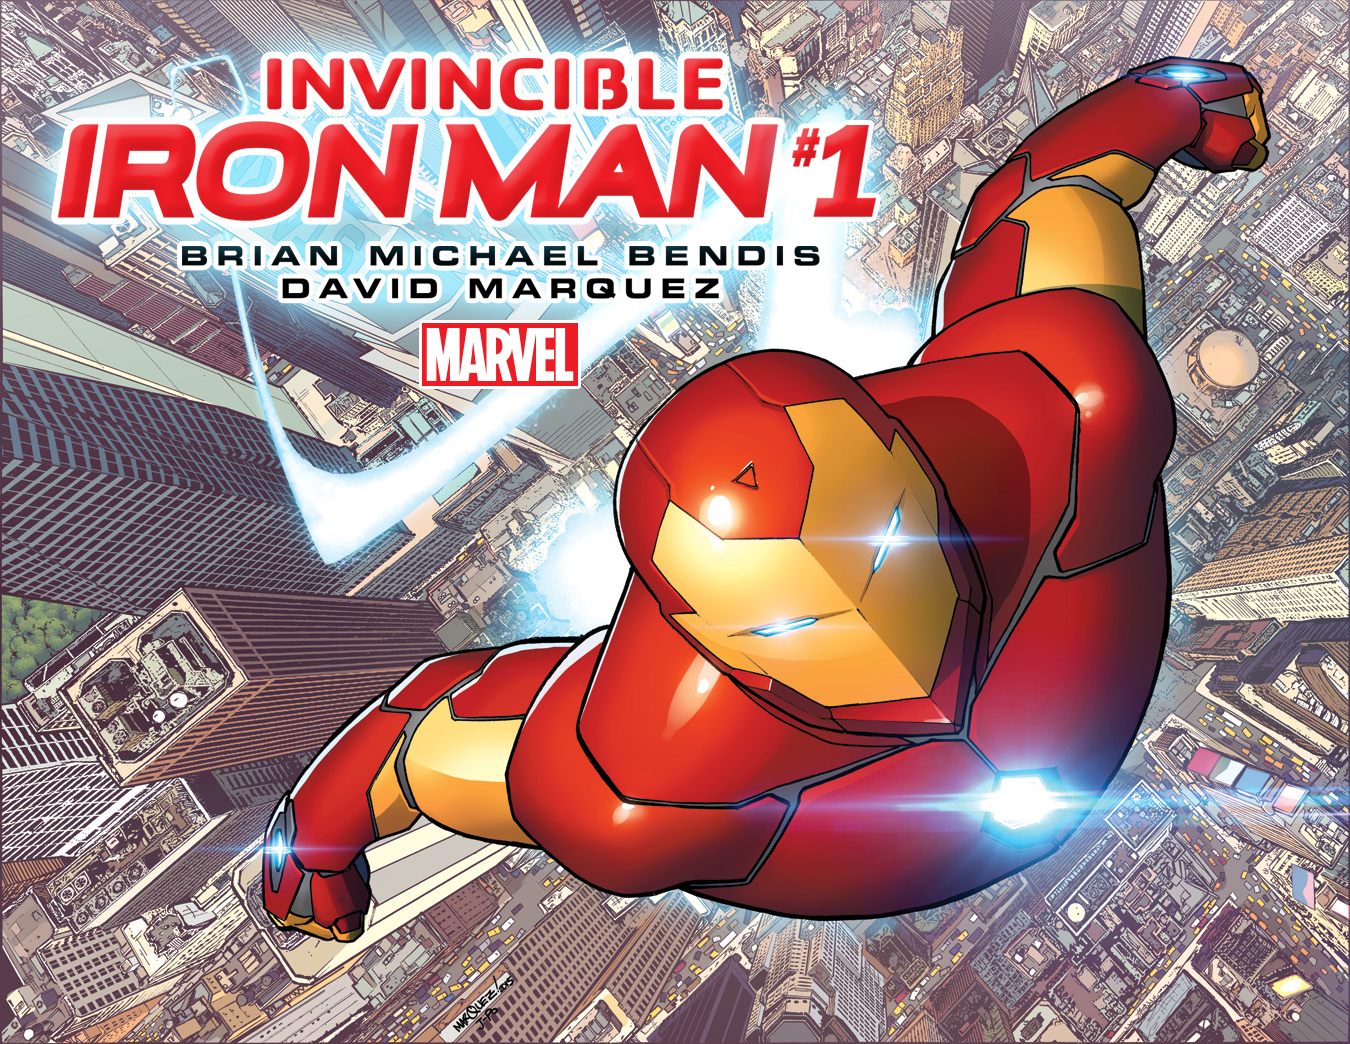 marvel previews invincible iron man 1 the escapist. Black Bedroom Furniture Sets. Home Design Ideas